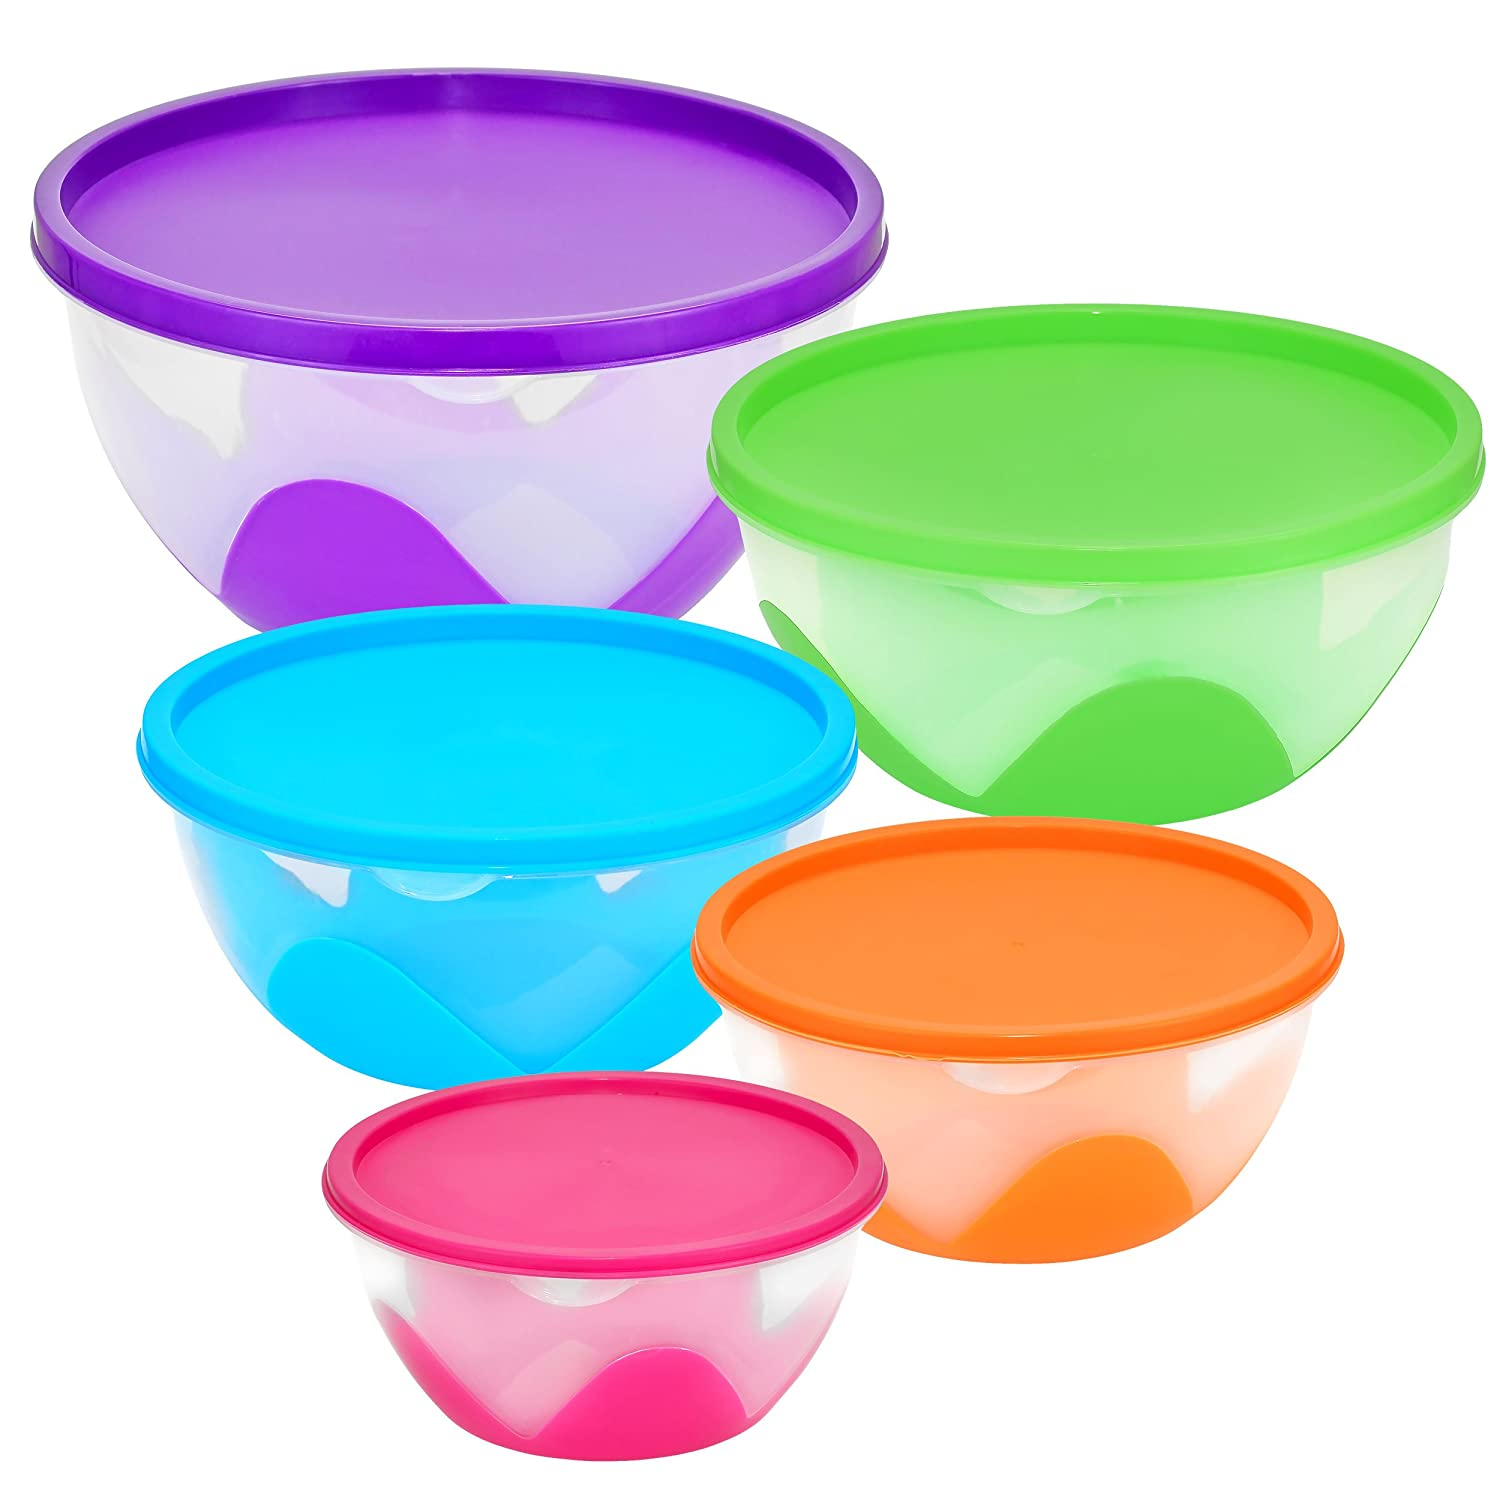 Southern Homewares Nested & Stackable Bowl/Food Storage Containers, 5 Piece Silicone/Plastic Multi-Purpose Set